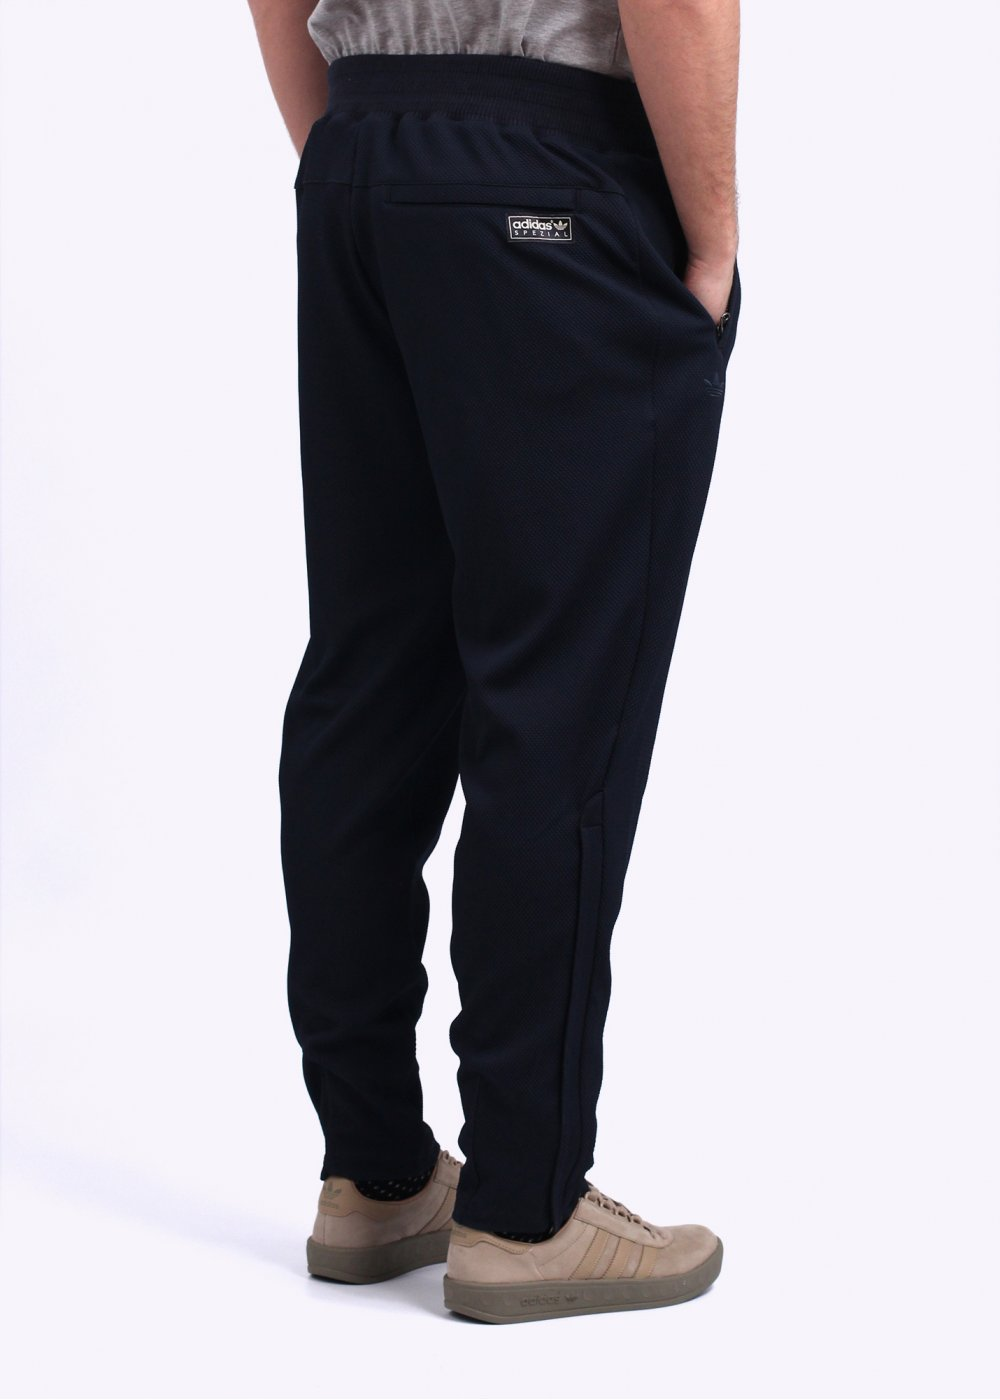 Track Pants Online Meeting the People's Interests. The online show is a big boss show for track pants. Track pants online have emerged in all the types suiting to the purpose you are heading. A day never goes by for today's world without watching the online store collection as they keep on updating. So, they add fashion + comfort = pleasure that you'll experience.